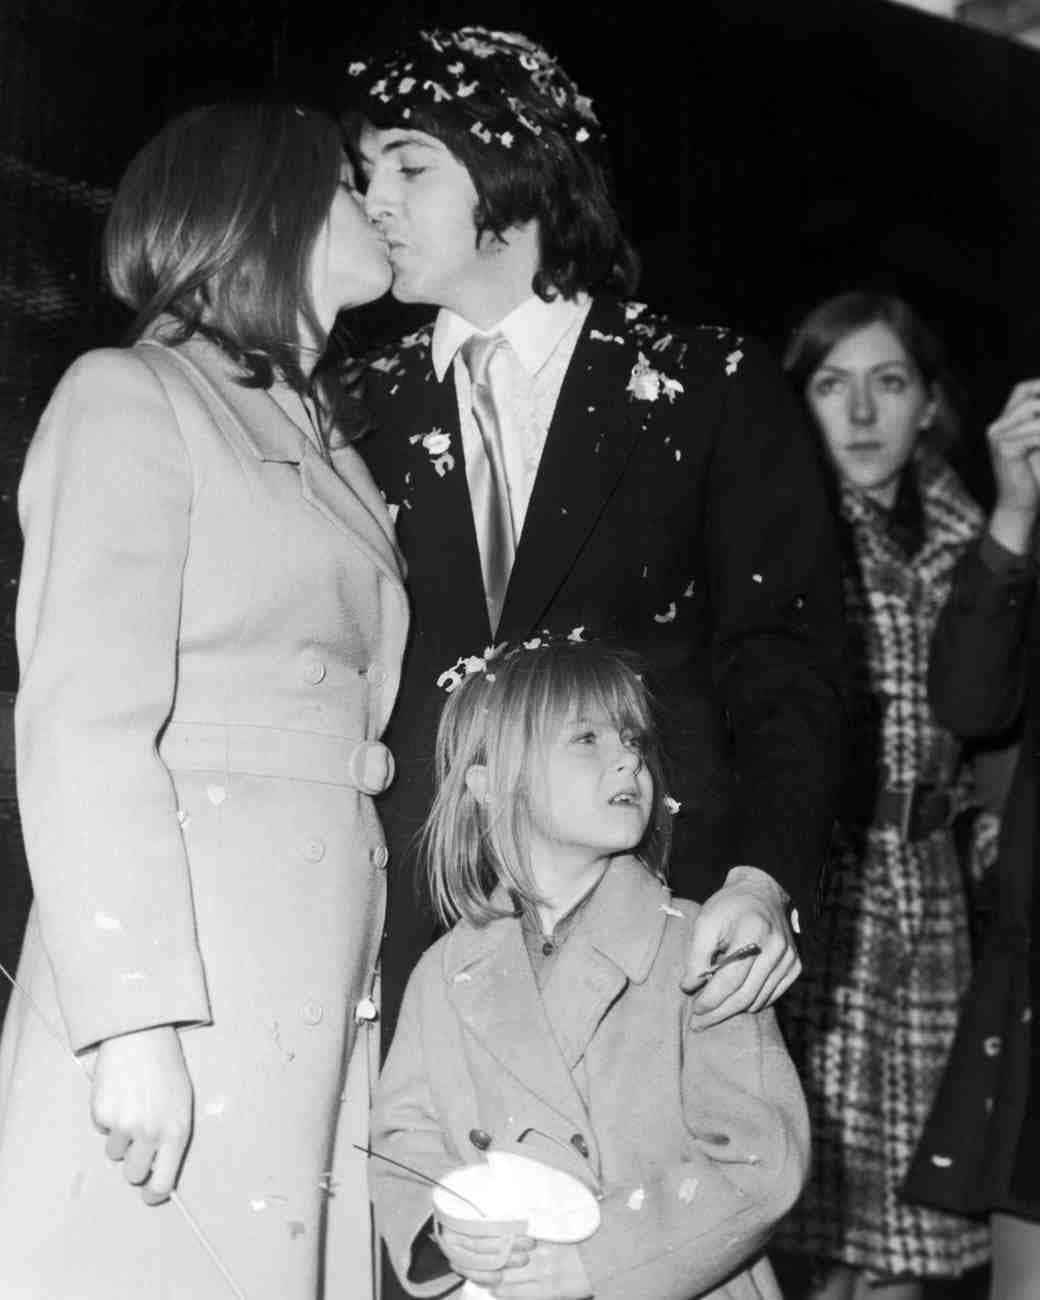 Paul And Linda McCartney On Their Wedding Day 12 March 1969